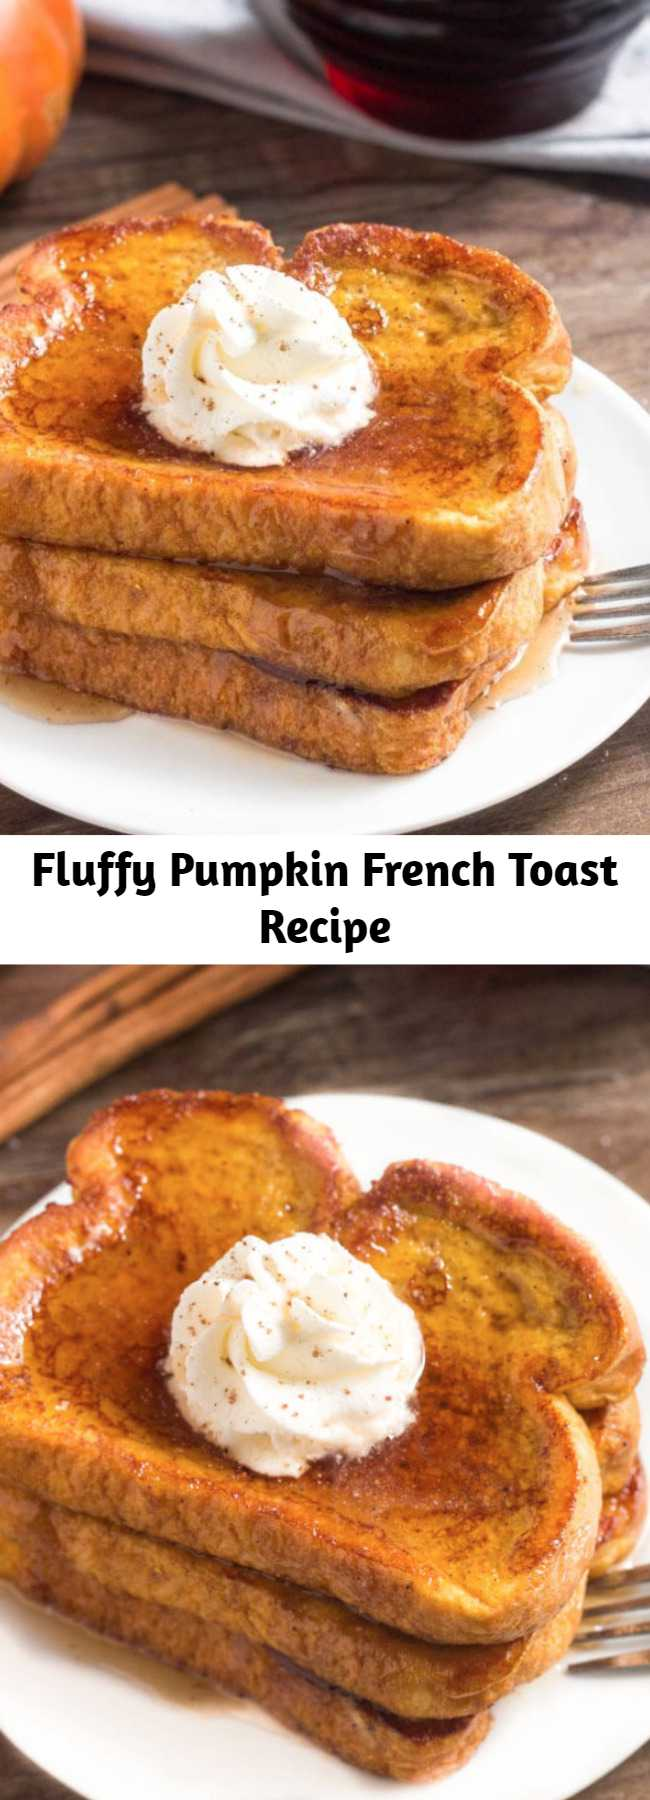 Fluffy Pumpkin French Toast Recipe - French toast that's perfect easy, breakfast for fall! This Pumpkin French Toast is extra fluffy, filled with pumpkin spice & tastes amazing drizzled in maple syrup. #fall #pumpkin #pumpkinspice #frenchtoast